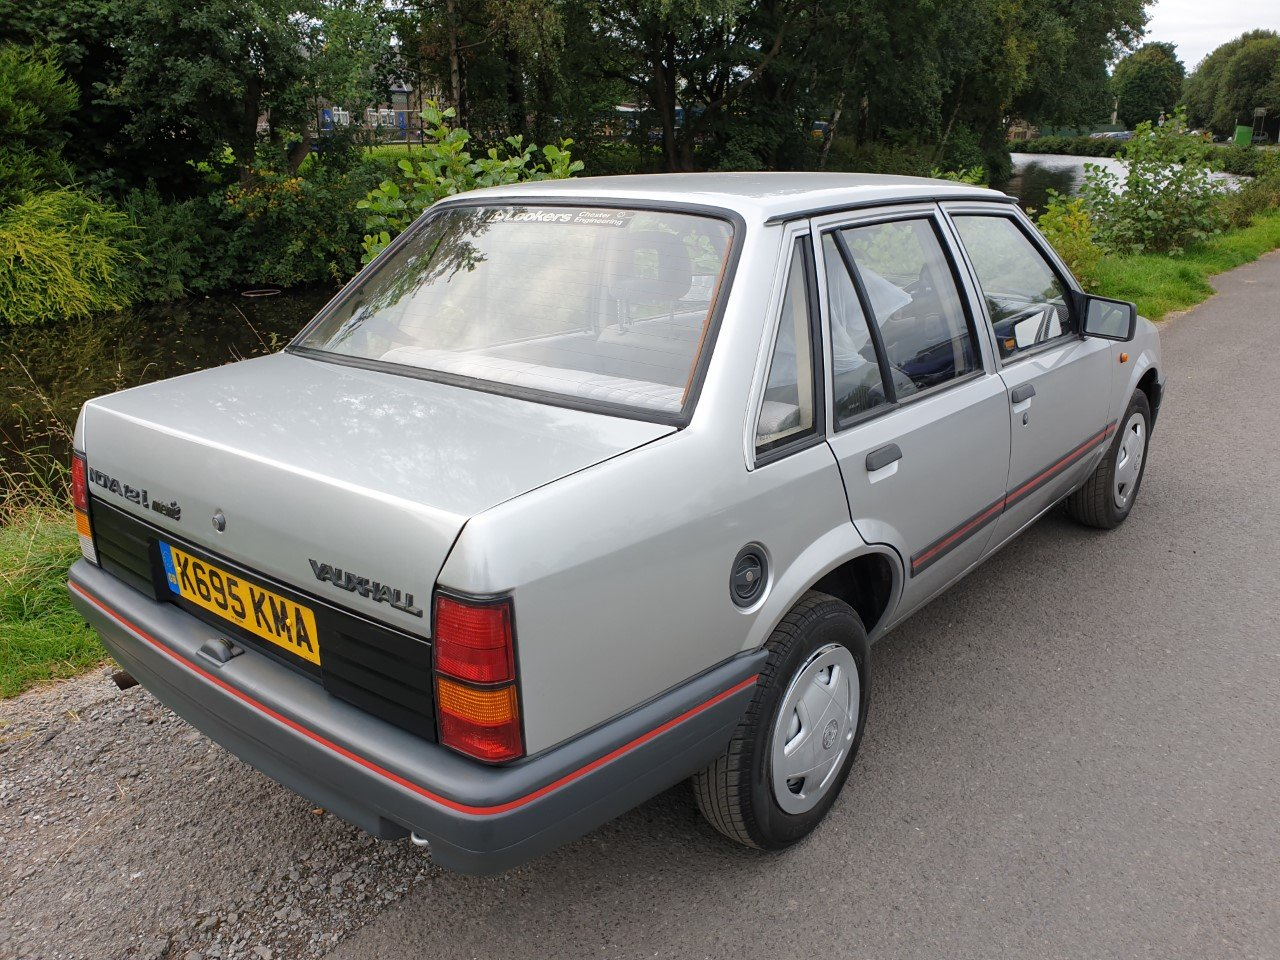 1992 Vauxhall Nova Saloon 4 door 1.2  low mileage  ** 45118 ** For Sale (picture 3 of 6)